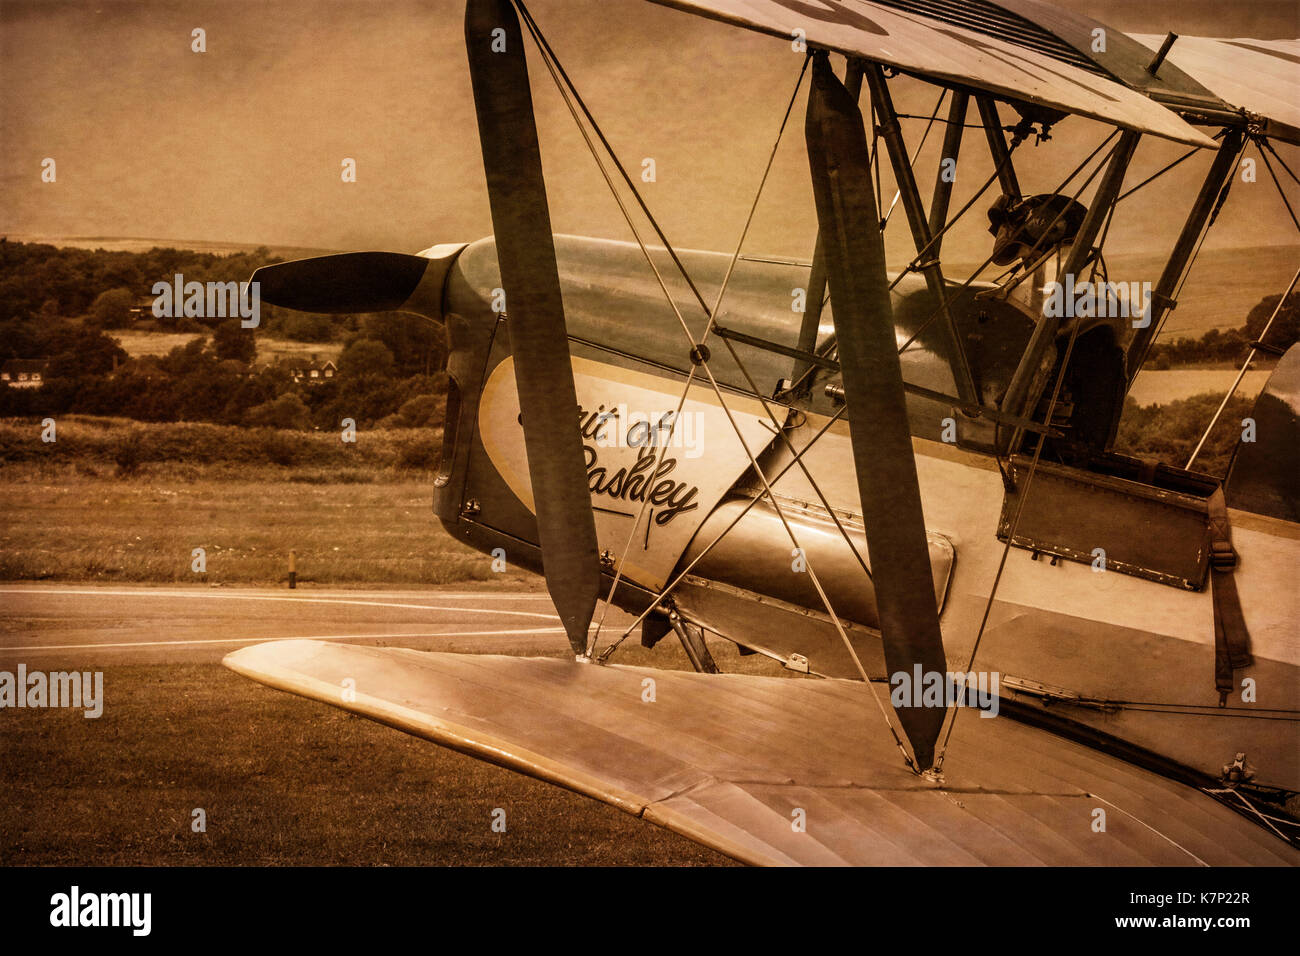 Sepia image of a De Havilland DH82A Tiger Moth on an airfield - Stock Image